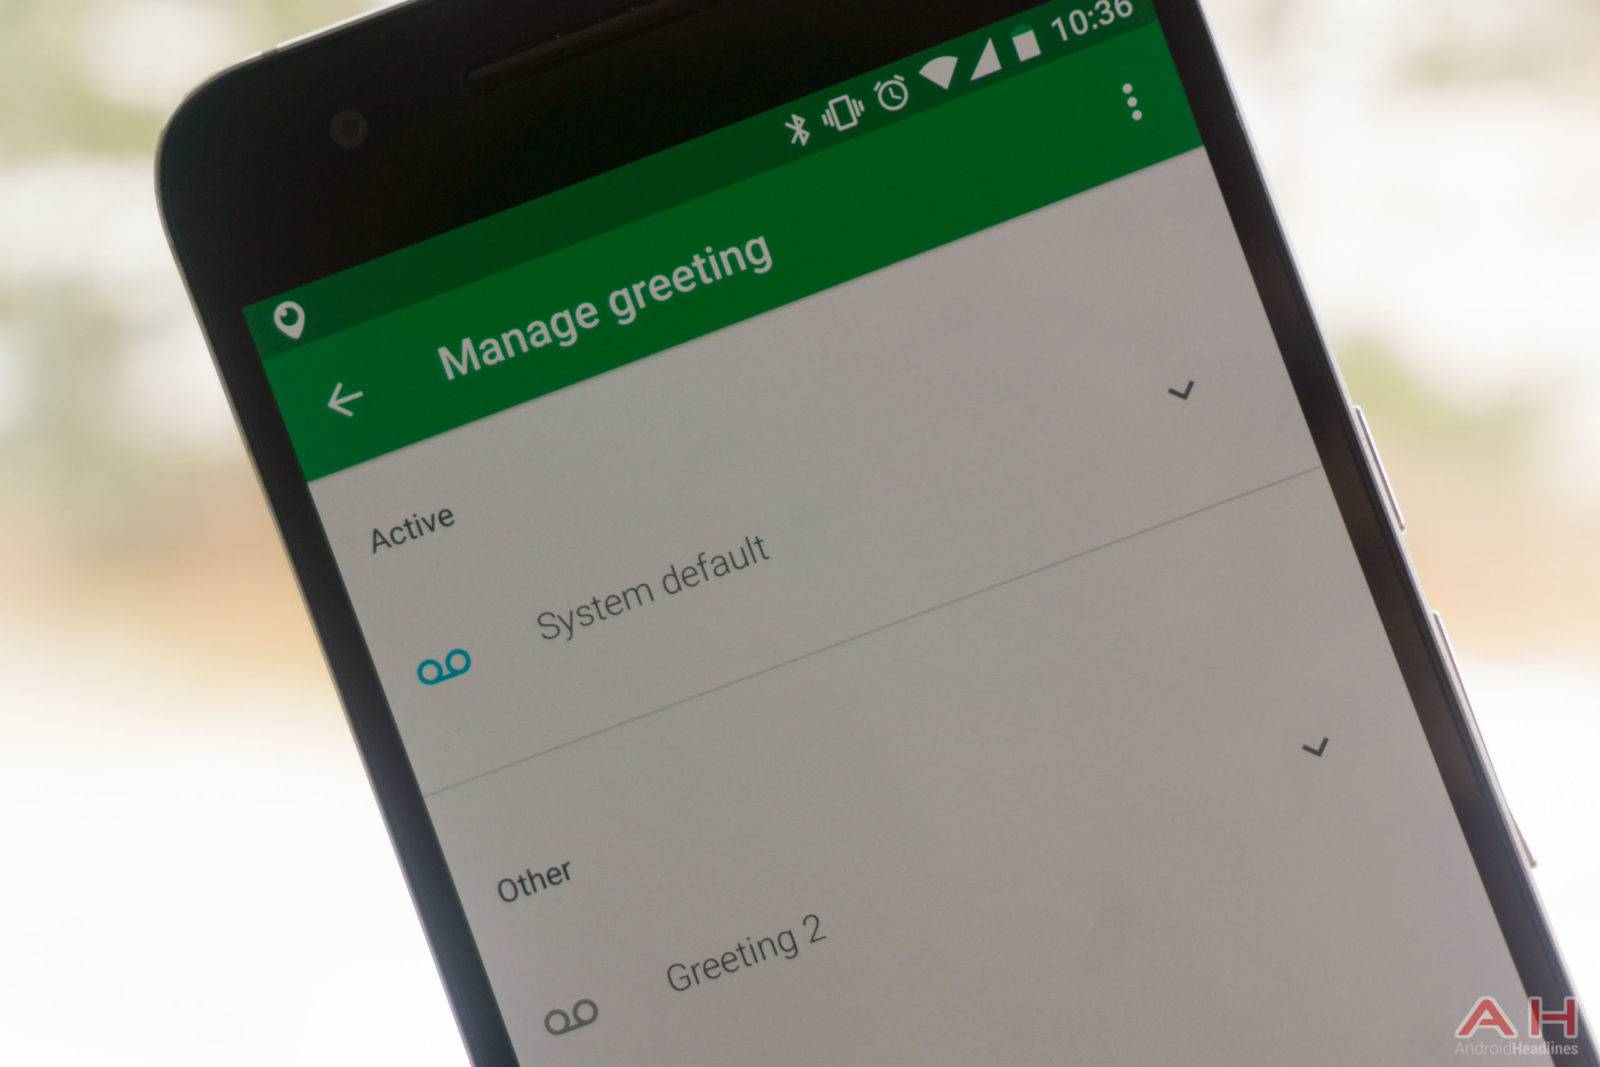 Project fi updates app for multiple voicemail greetings project fi updates app for multiple voicemail greetings kristyandbryce Images